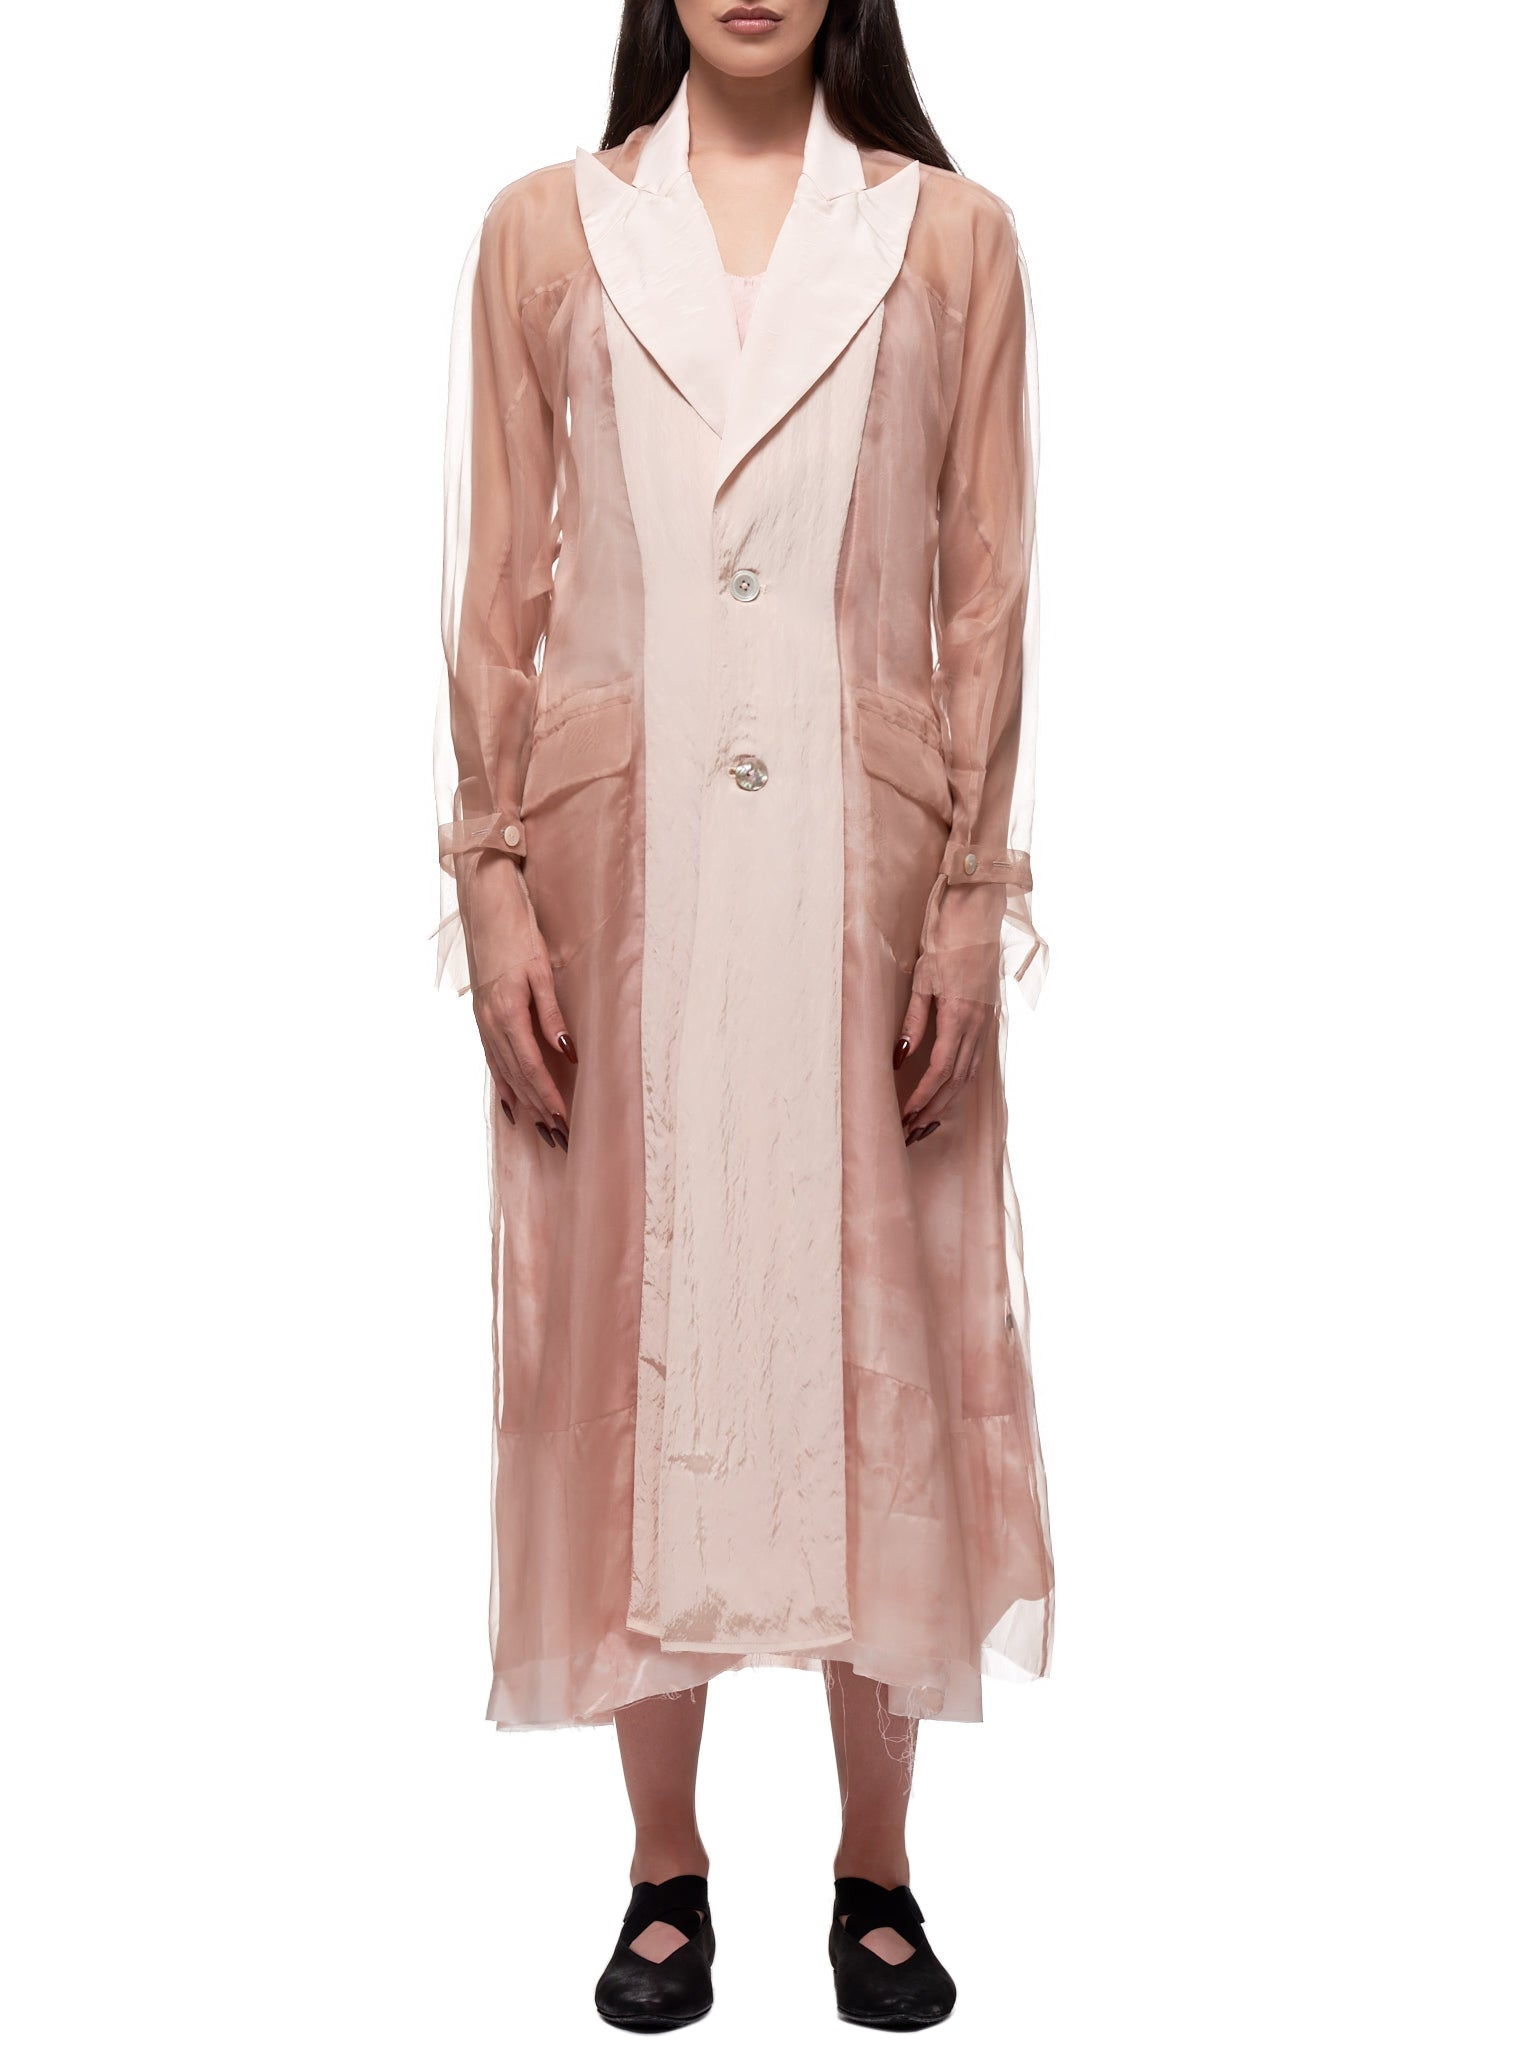 Deconstructed Tulle Kimono Coat (A2020315B-DIRTY-PINK)